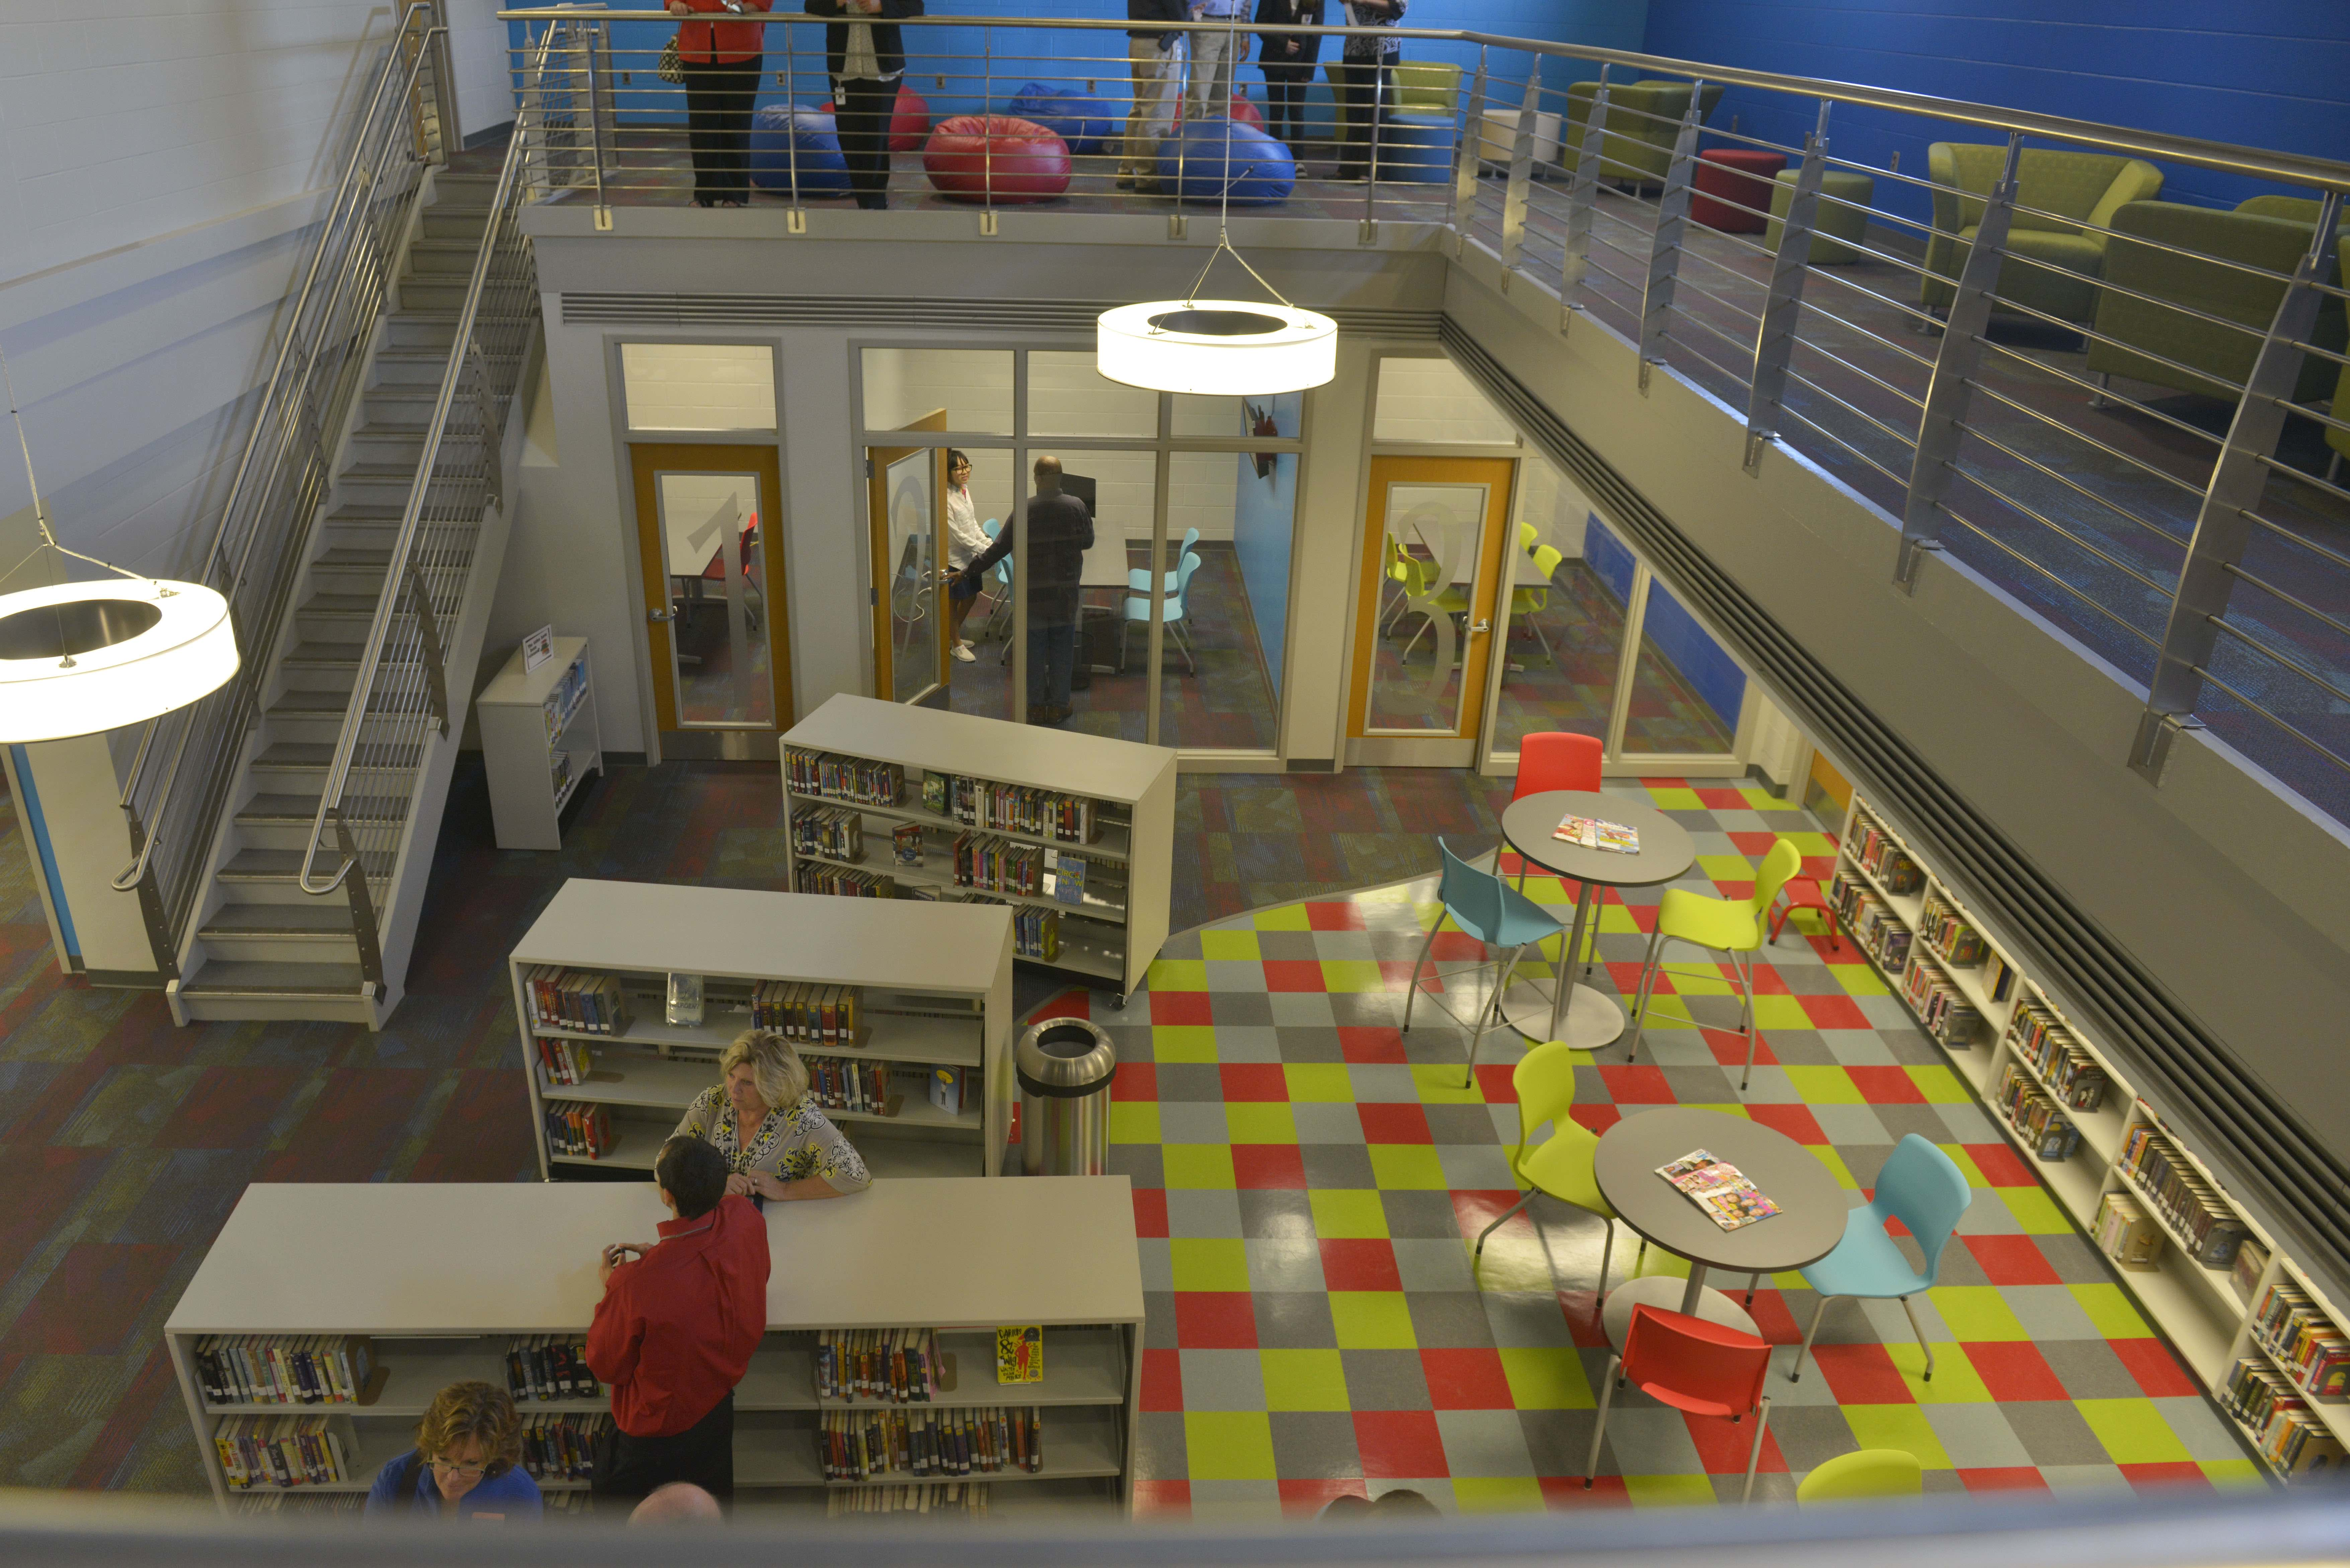 Nashville public schools redefines school libraries k 12 - Interior design school nashville ...